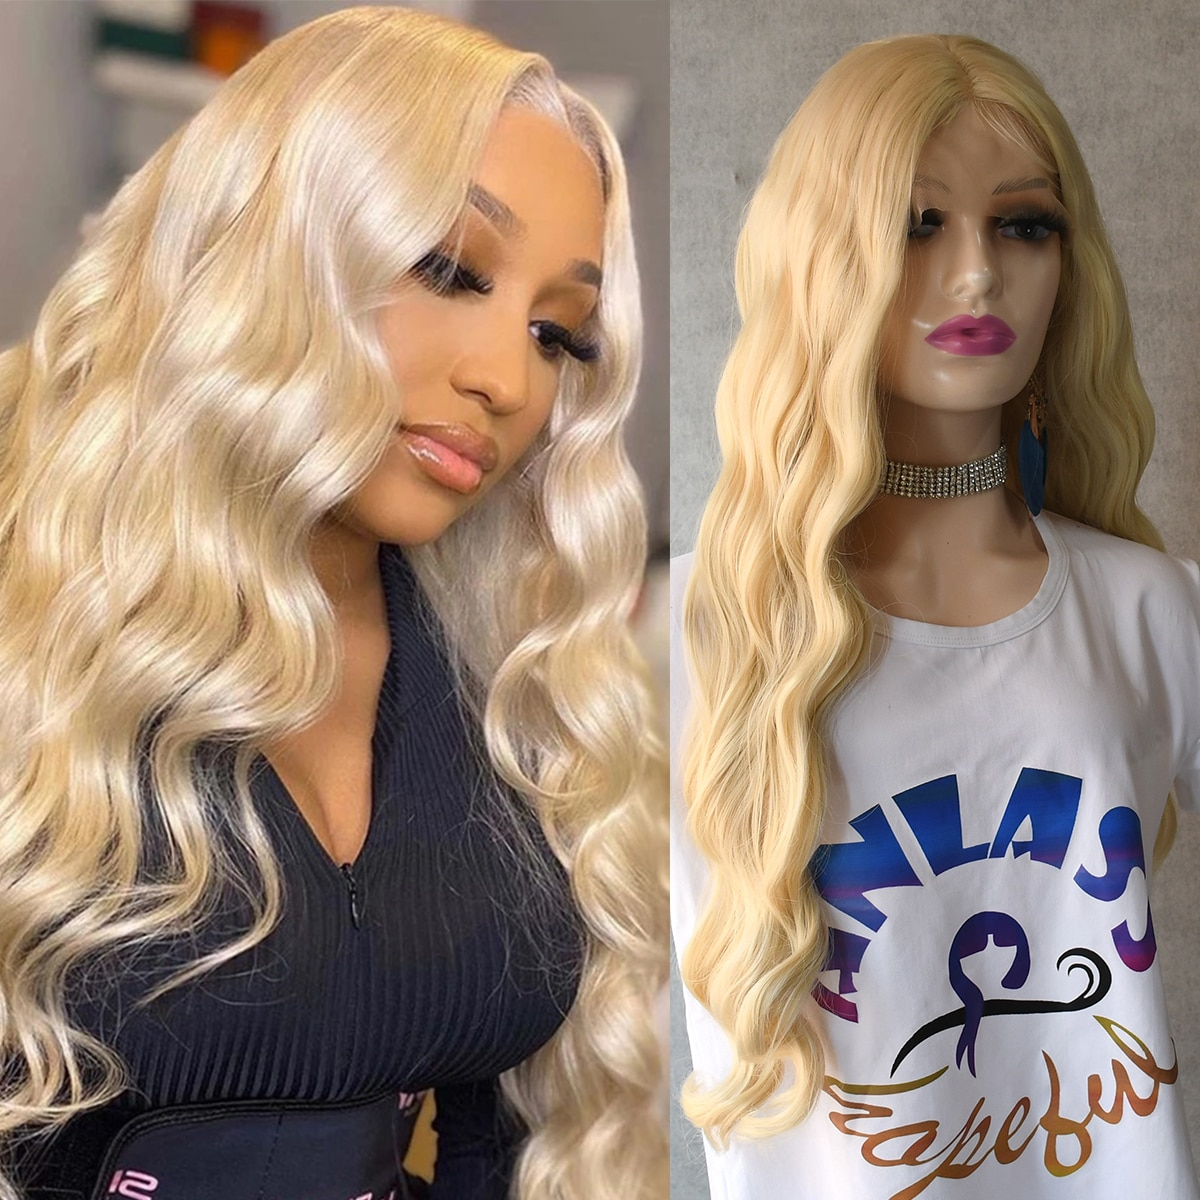 613 Blonde Lace Front Wig Transparent 28inch Long Water Wave Wig Synthetic Lace Wig  For Women Hallo